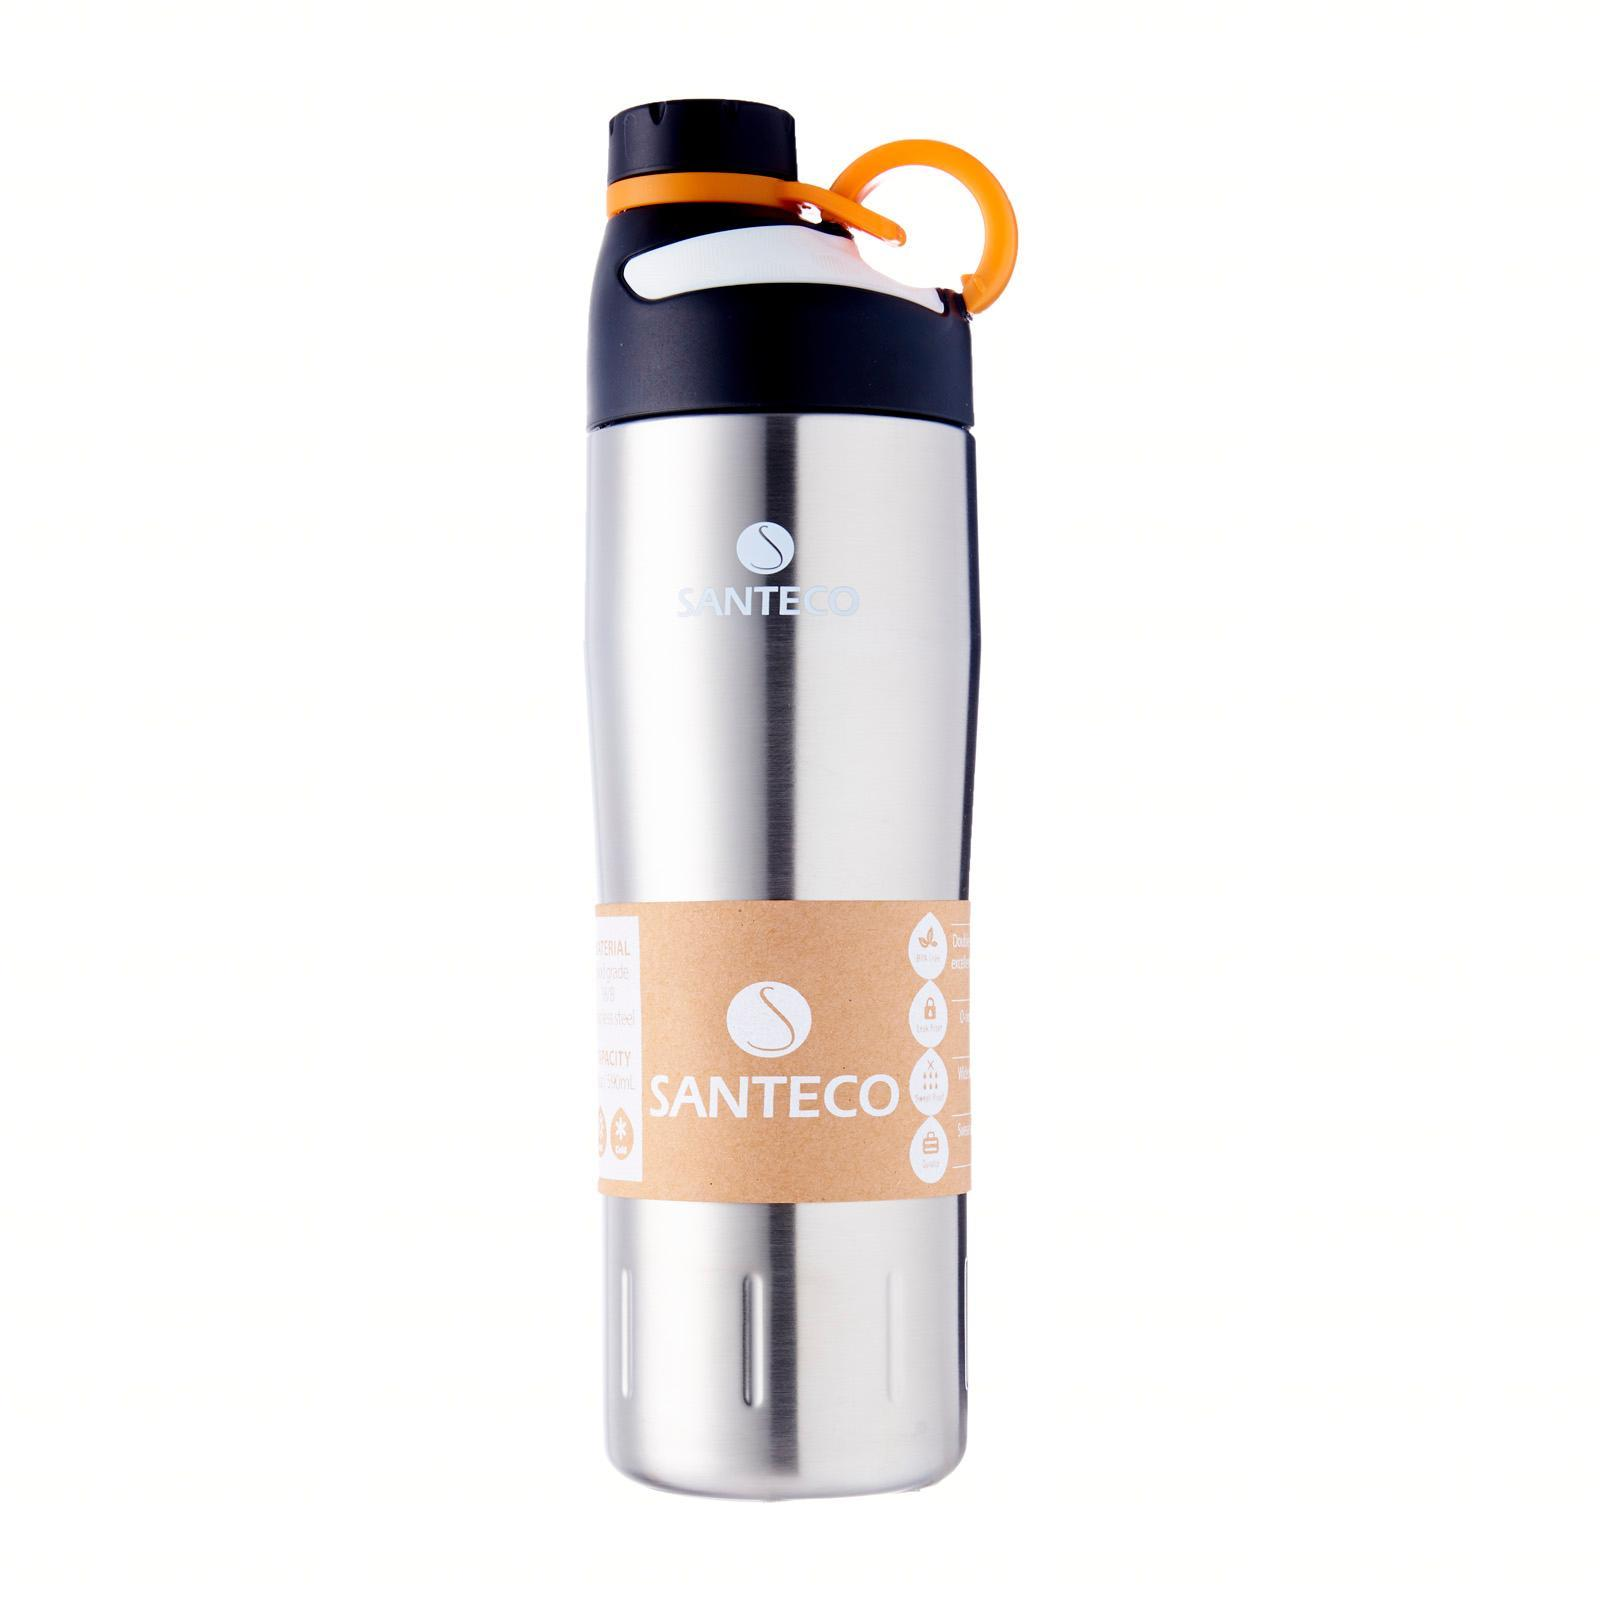 SANTECO Oural Sports Bottle Vacuum Insulated (Stainless Steel)